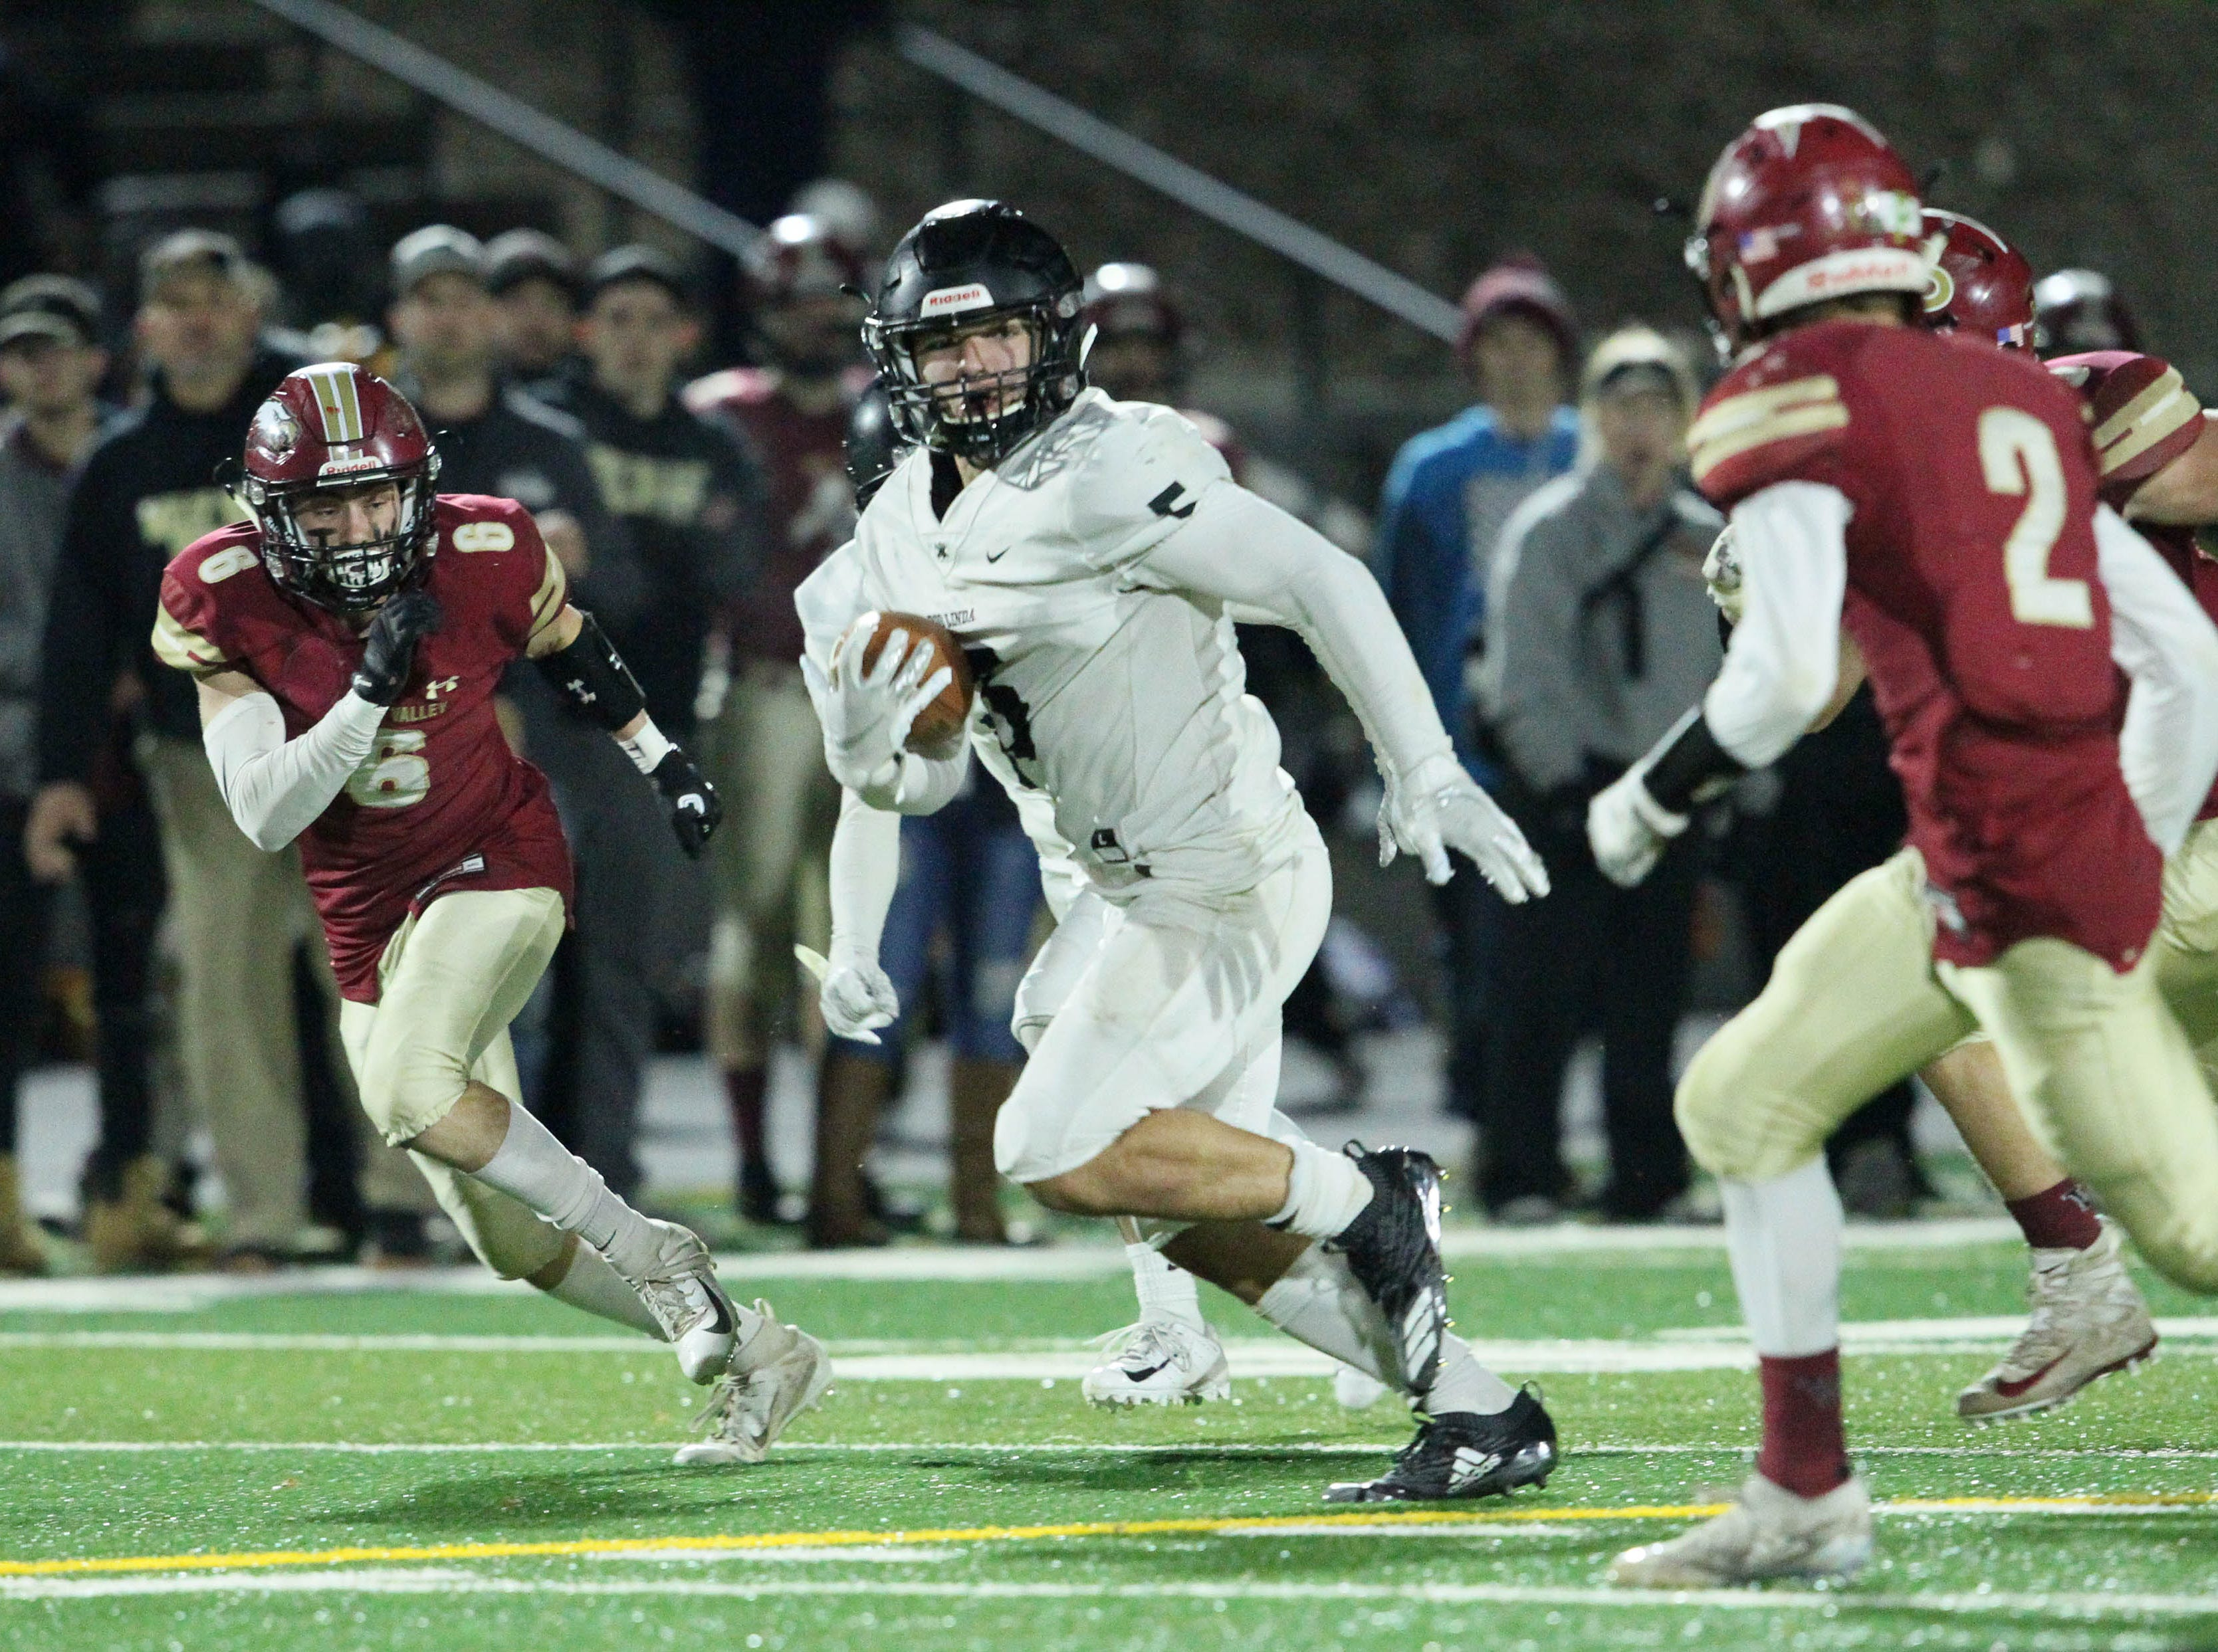 Rio Linda's Cameron Skattebo (5) runs for a 1st down against Devin Low (2) and Dagen Johnson-Sanders (6) in the 1st quarter.   Rio Linda beat the Eagles, 21-13, to take the NorCal regional title for Division 5-AA in Red Bluff on Friday, Dec. 7.